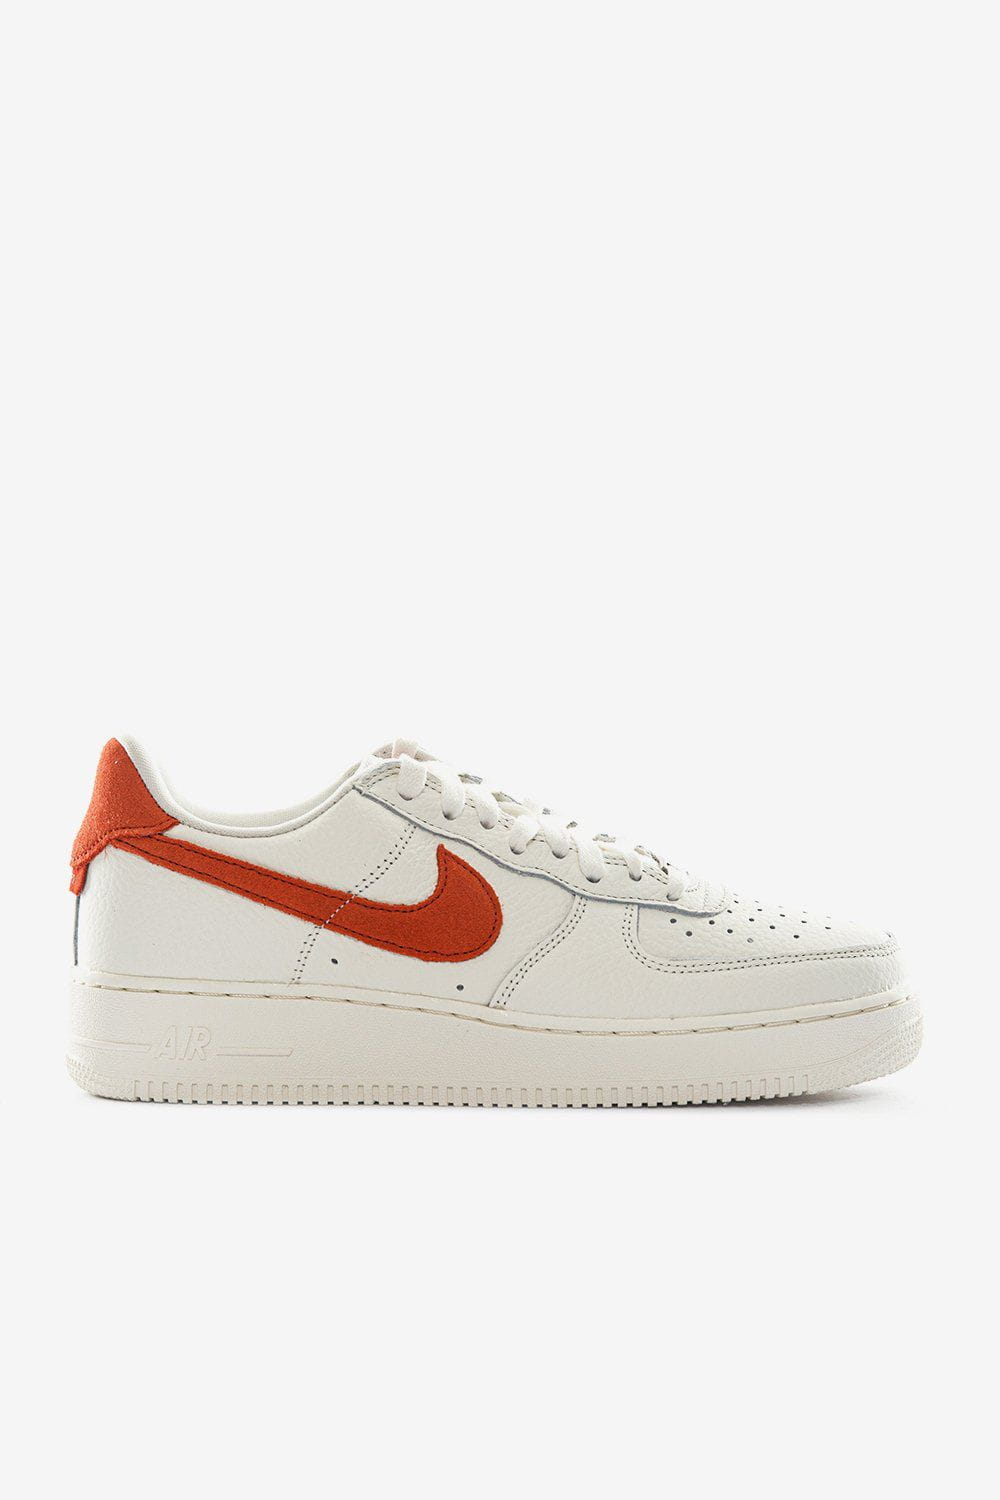 Nike Footwear Air Force 1 '07 Craft